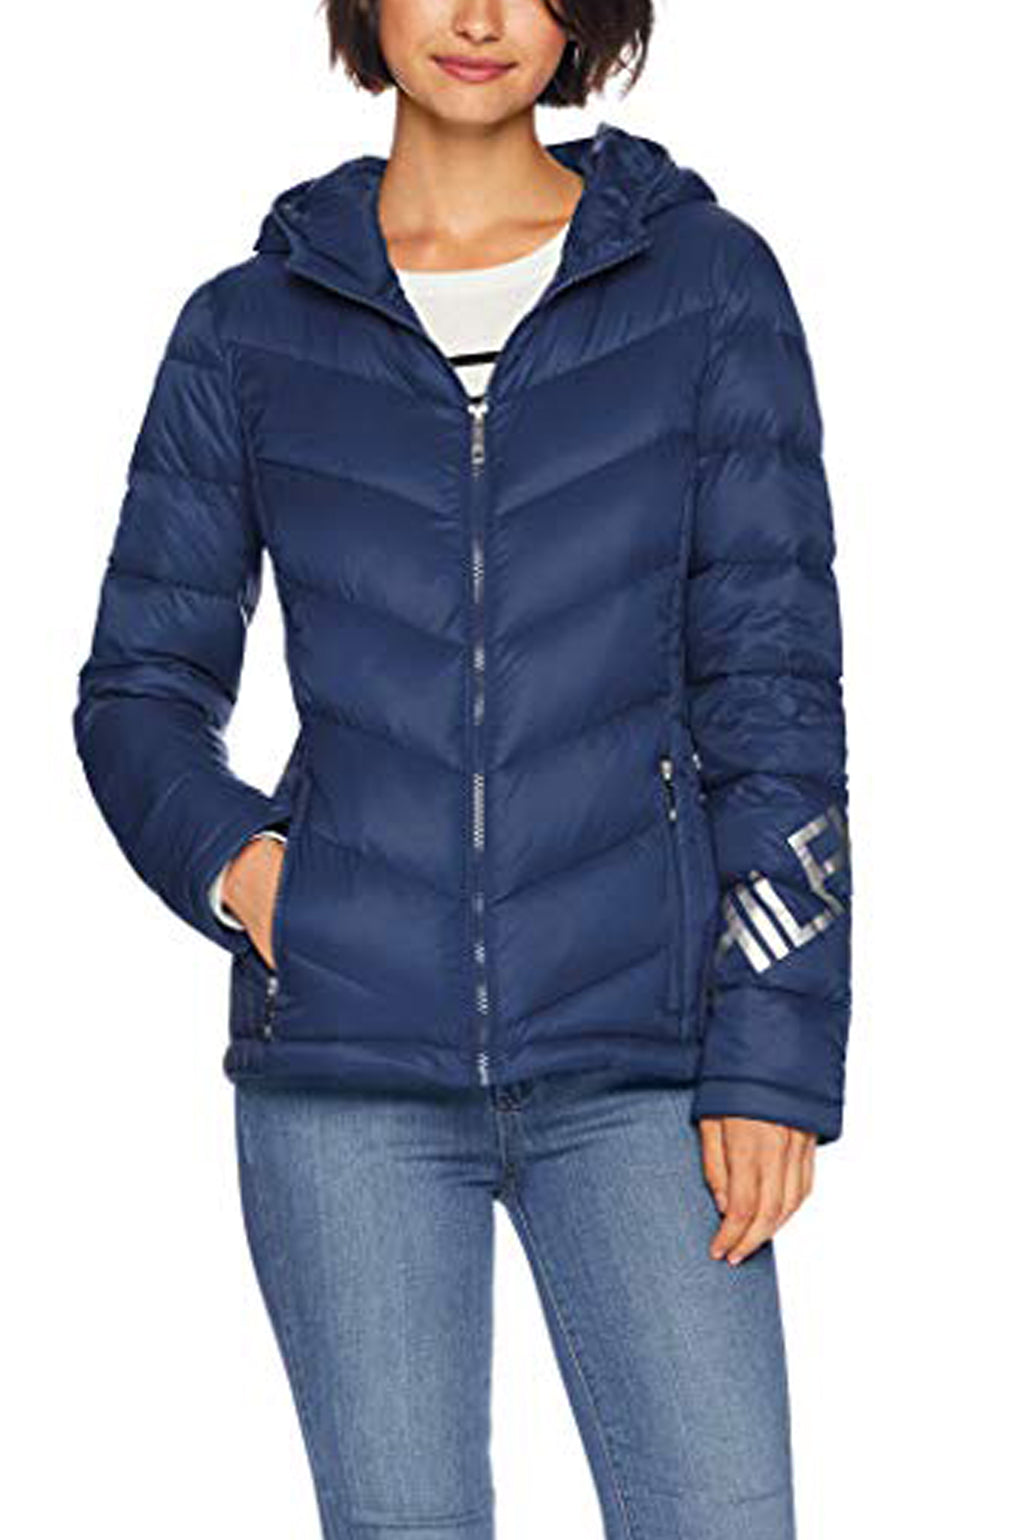 Tommy Hilfiger Outerwear  Womens Iconic Packable Hooded Down Jacket